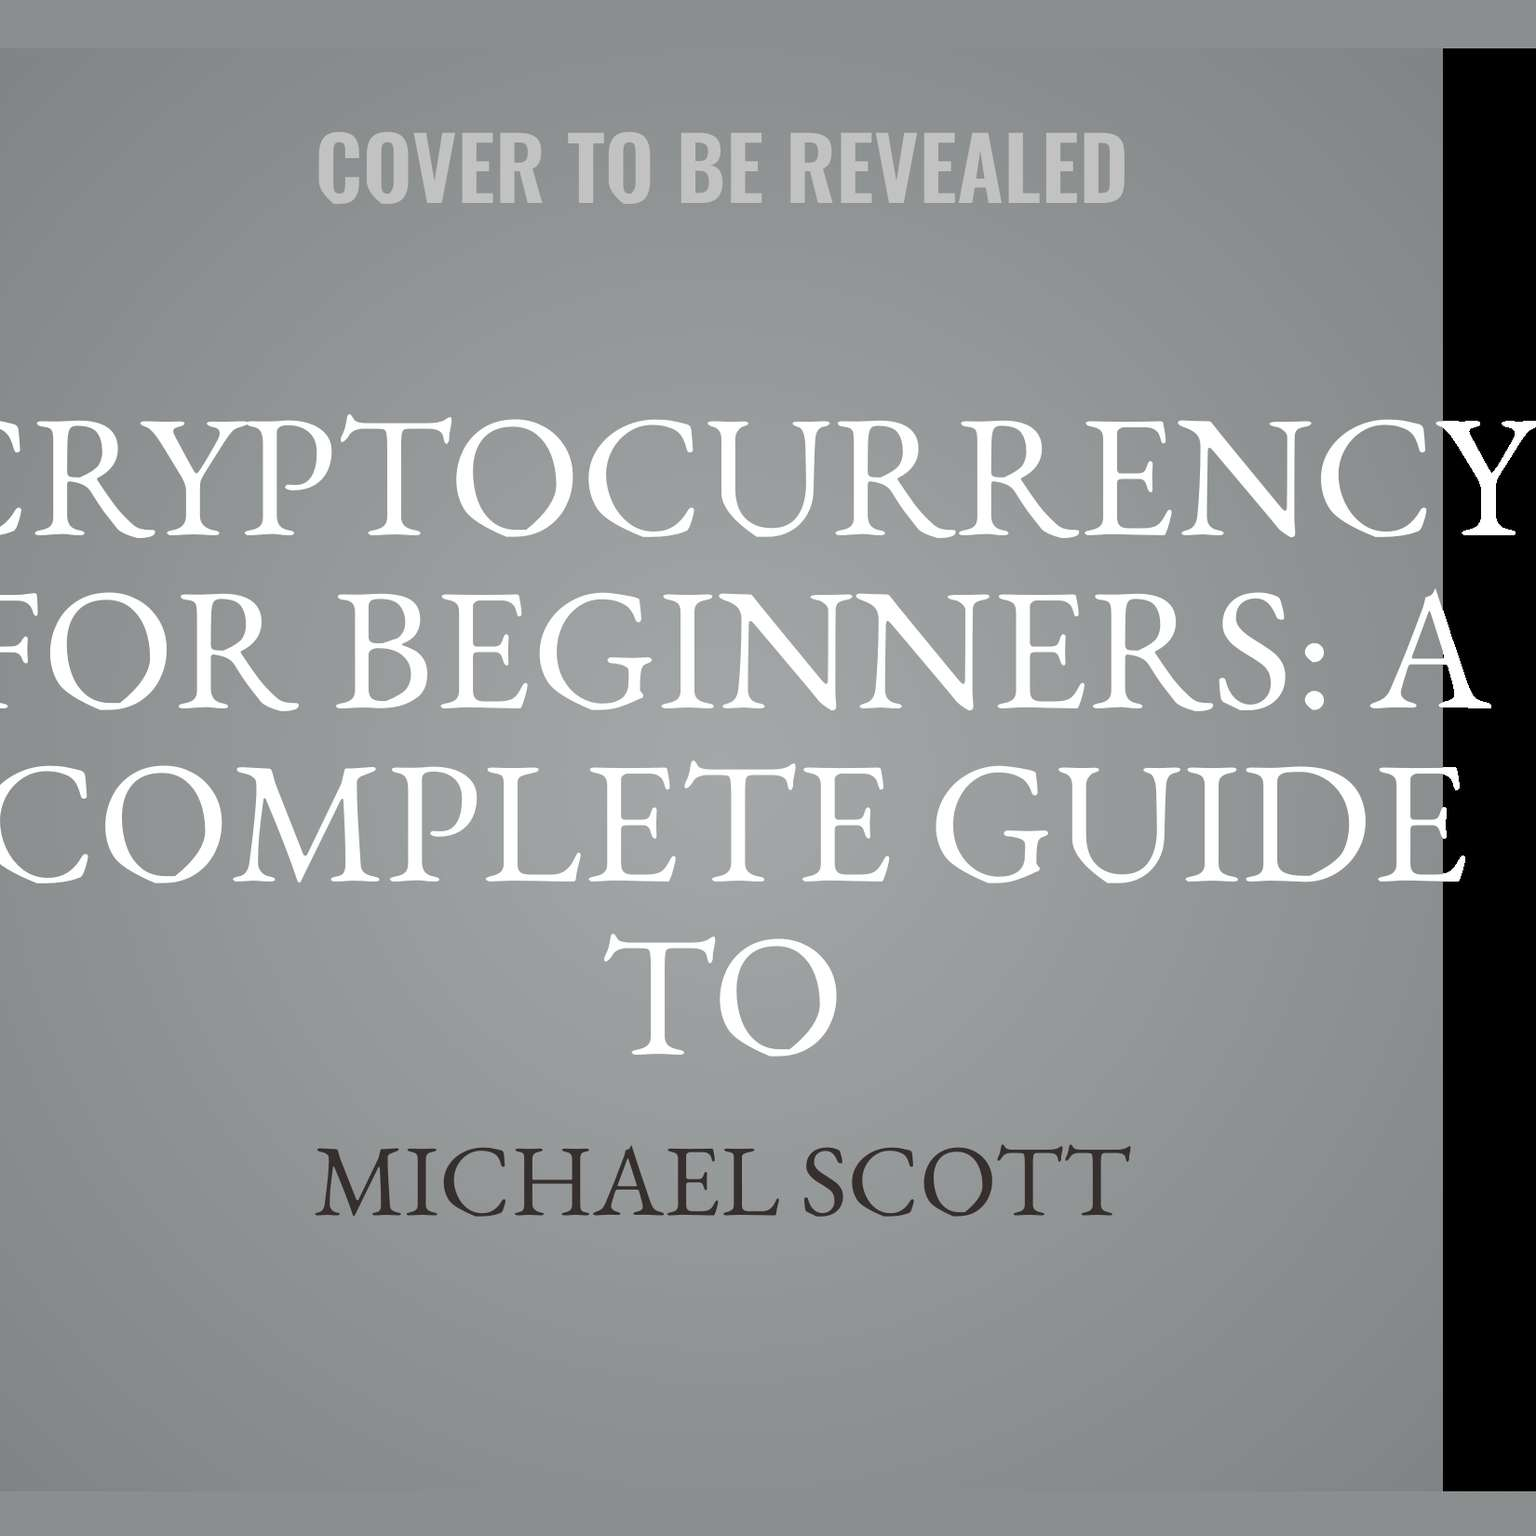 Printable Cryptocurrency For Beginners: A Complete Guide To Understanding The Crypto Market From Bitcoin, Ethereum And Altcoins To Ico And Blockchain Technology Audiobook Cover Art